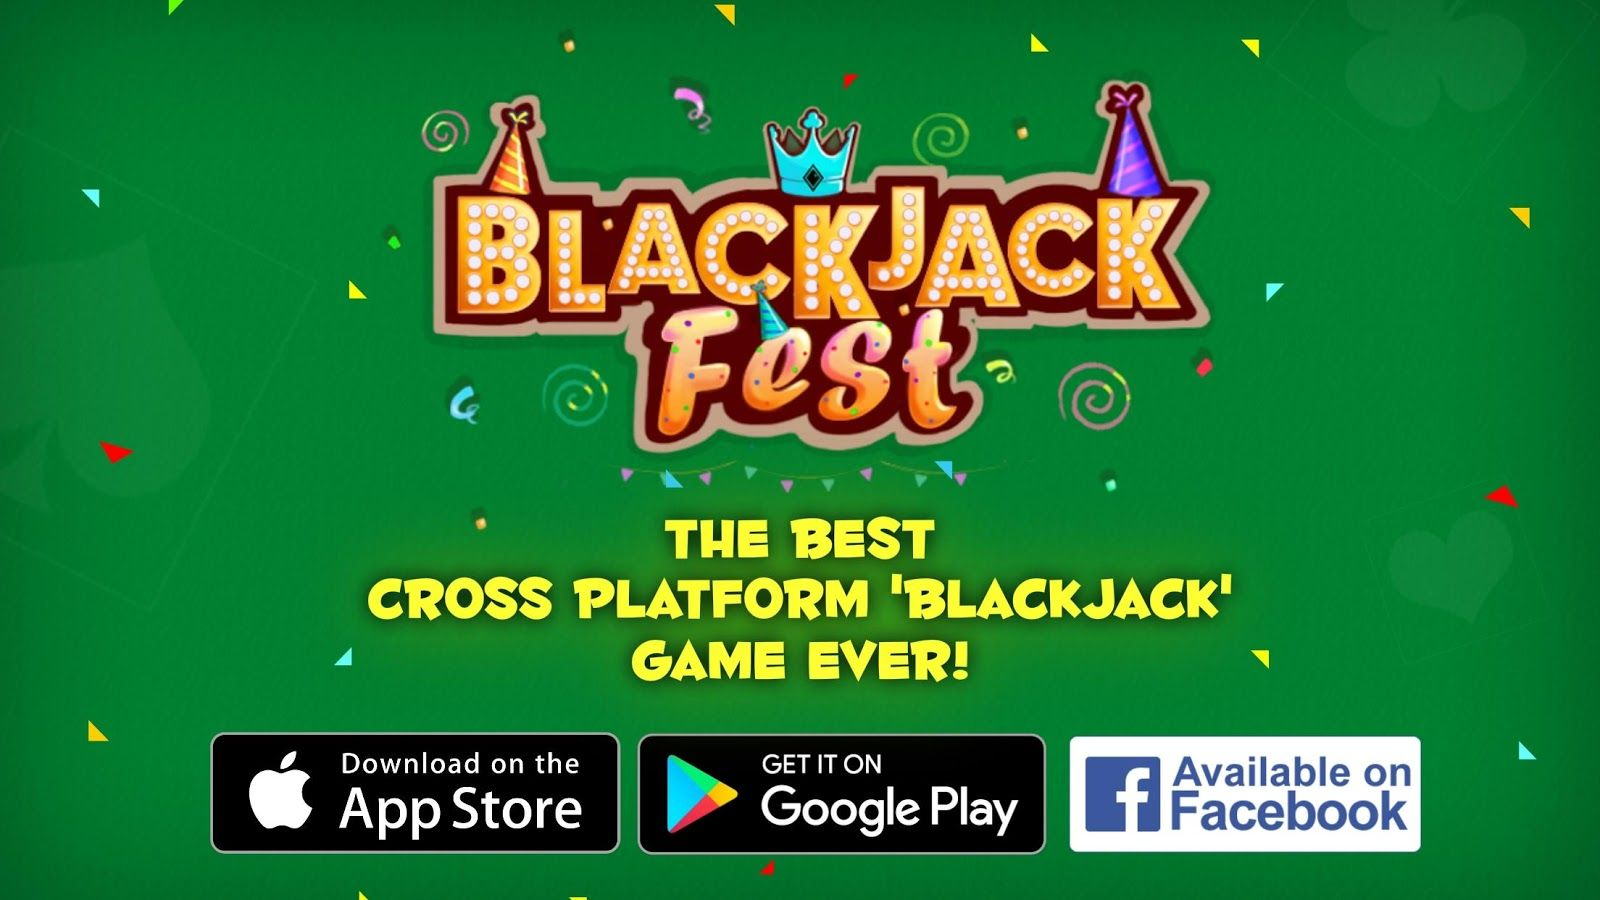 Pin by Giant Box Labs on Blackjack Fest Game Blackjack